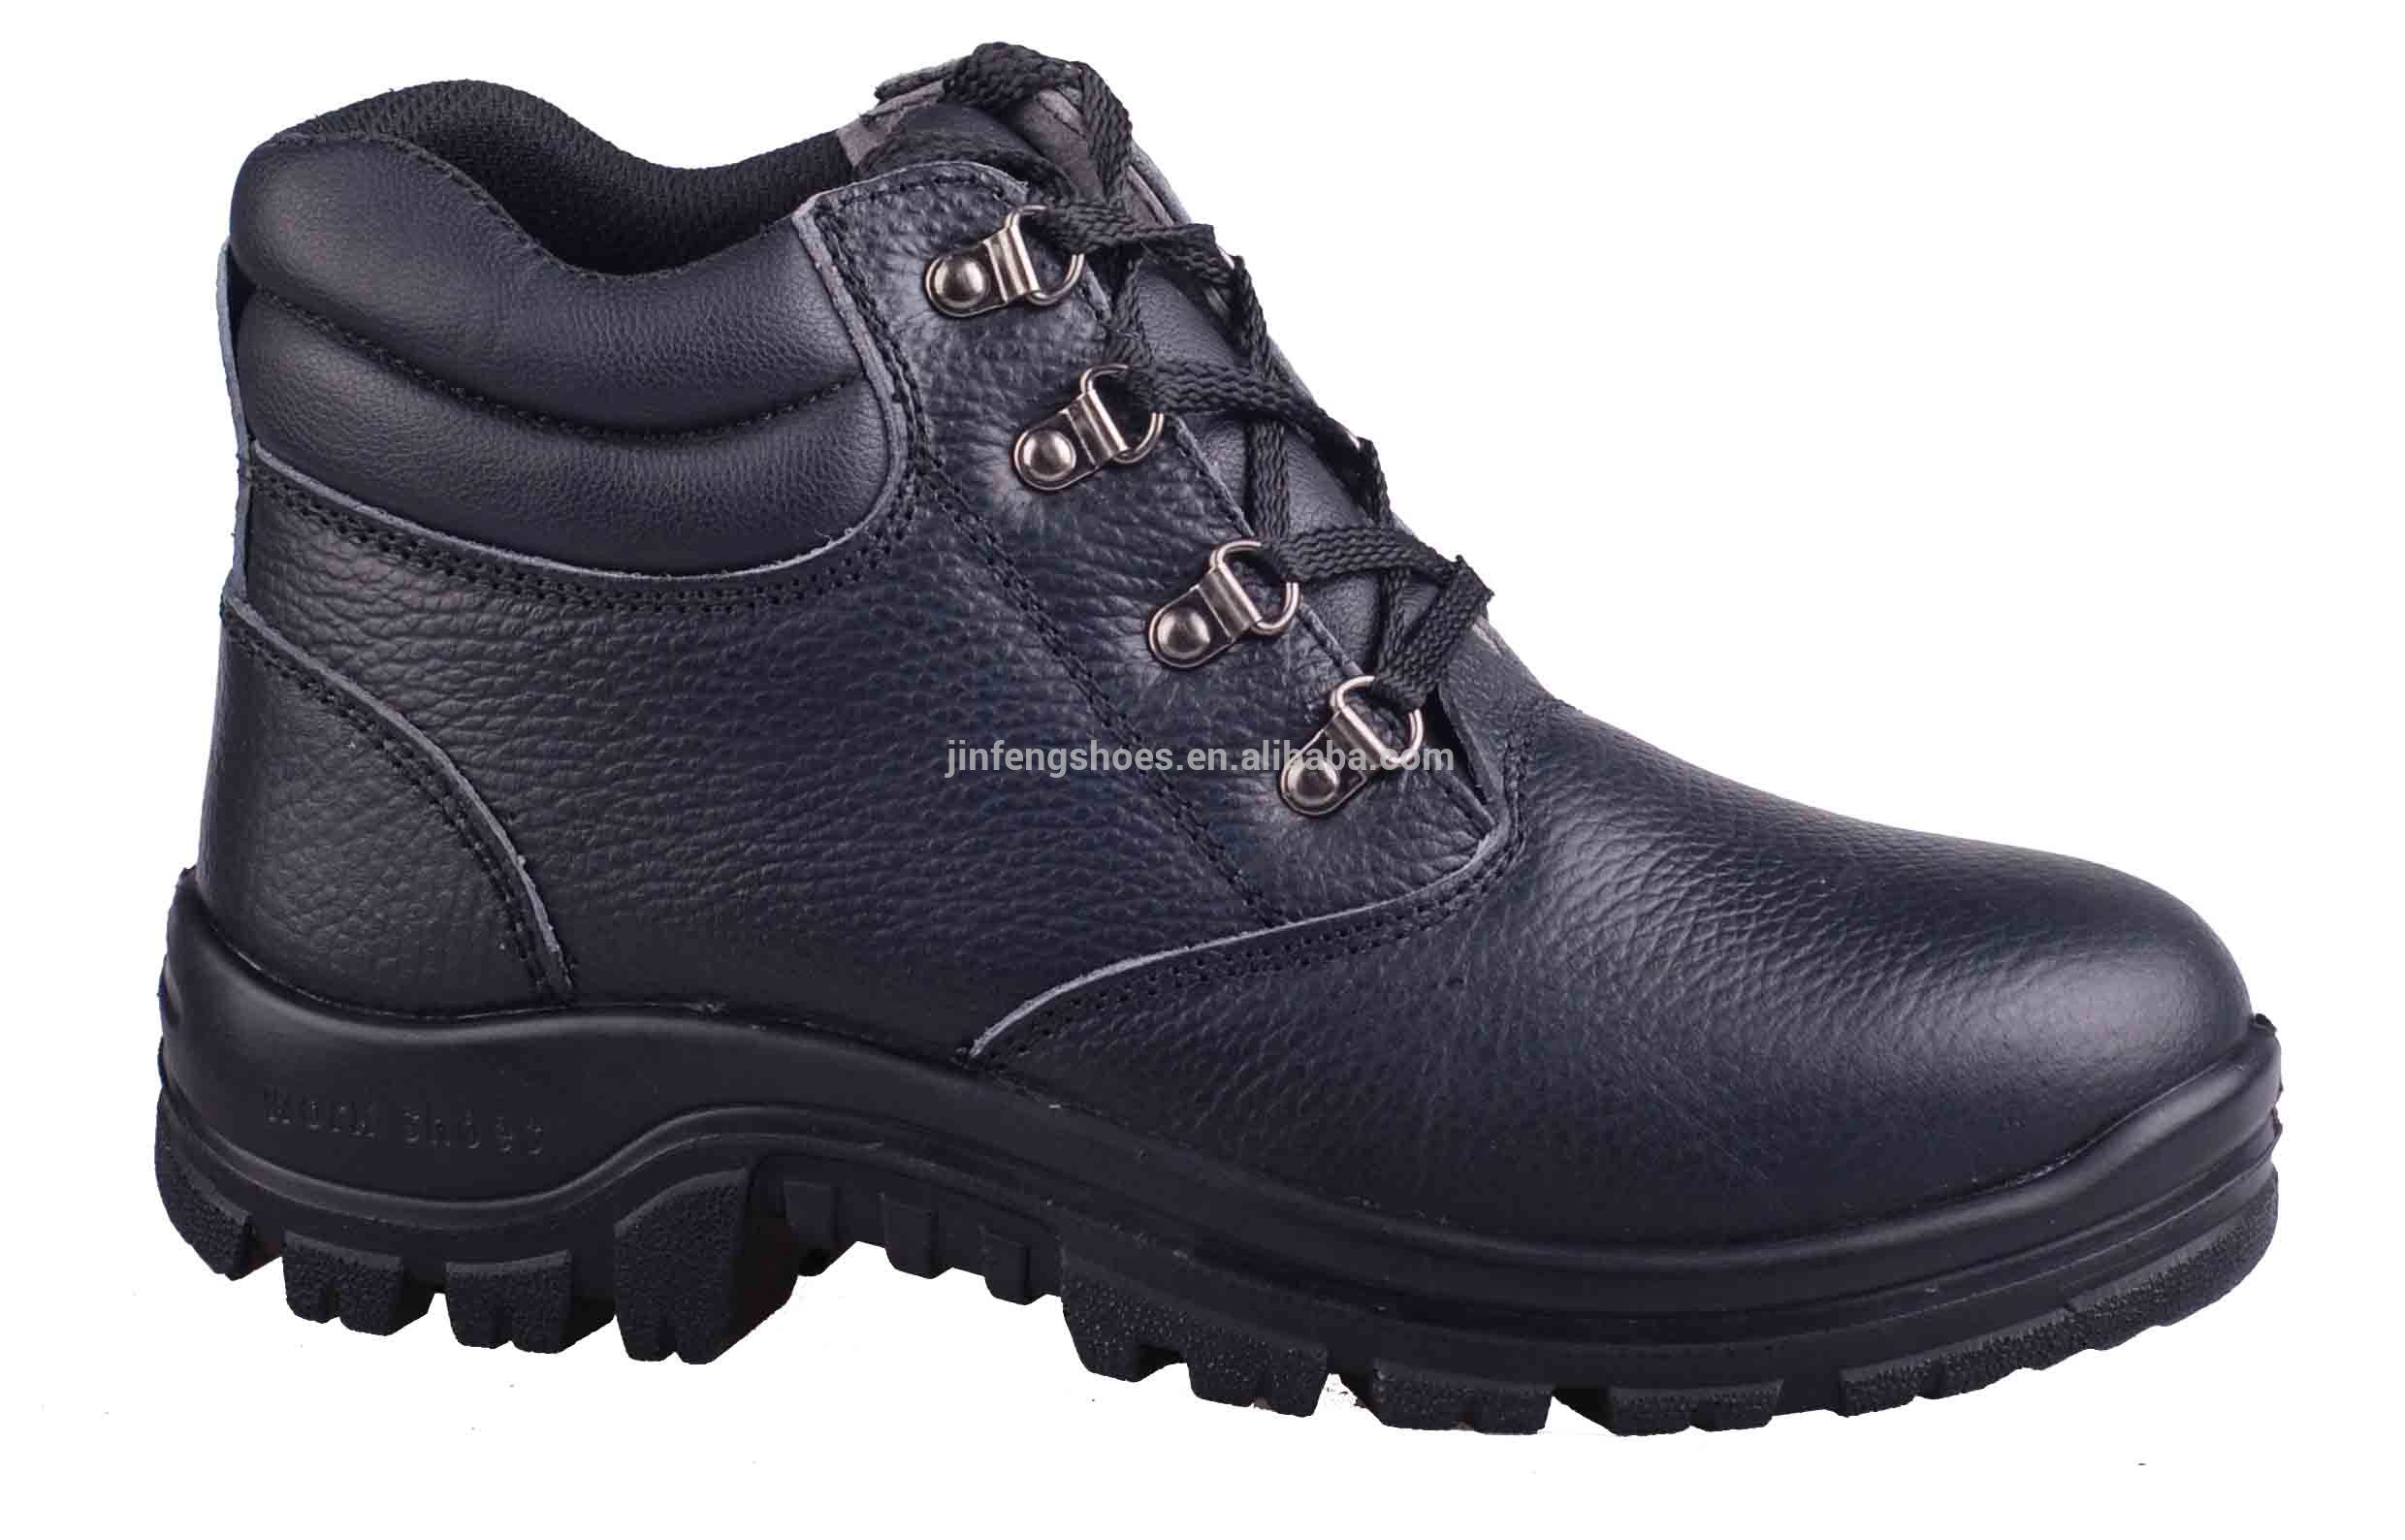 black action leather shoe jinfeng style protect steel toe